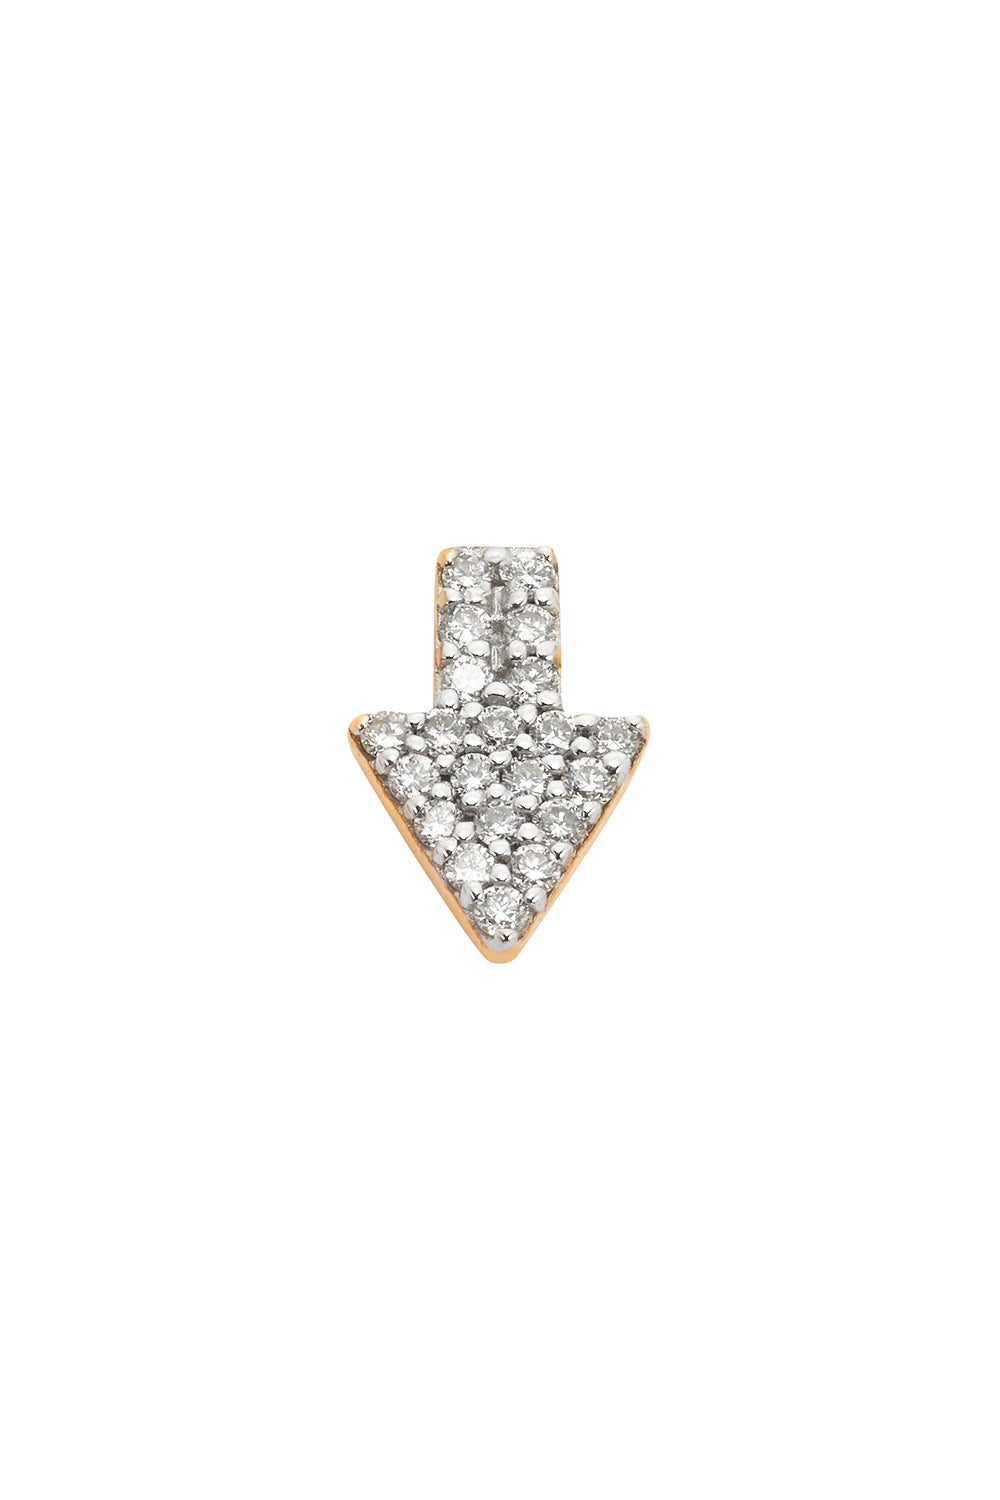 Superfine Arrow Stud Half, 9ct Gold, .125ct Diamond